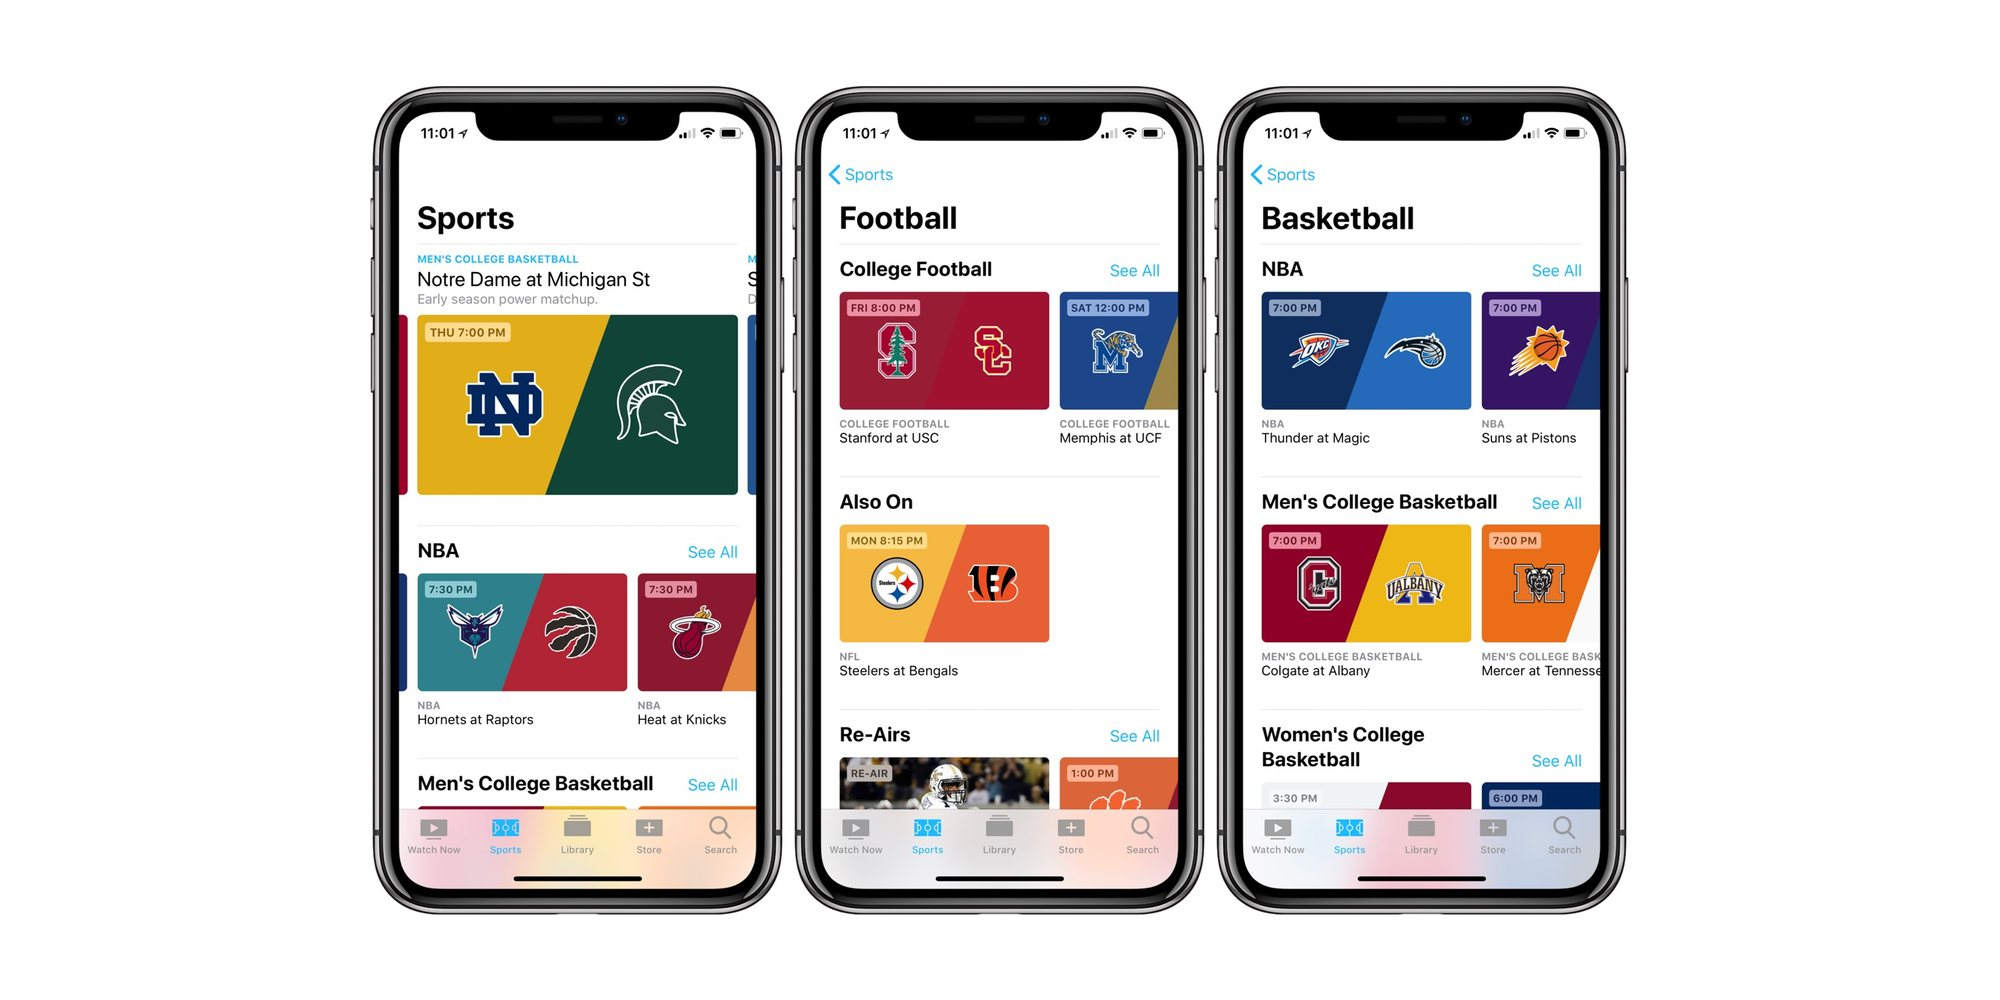 Eddy Cue says Apple unlikely to seek exclusive rights for sports as it focuses on a sports curation service